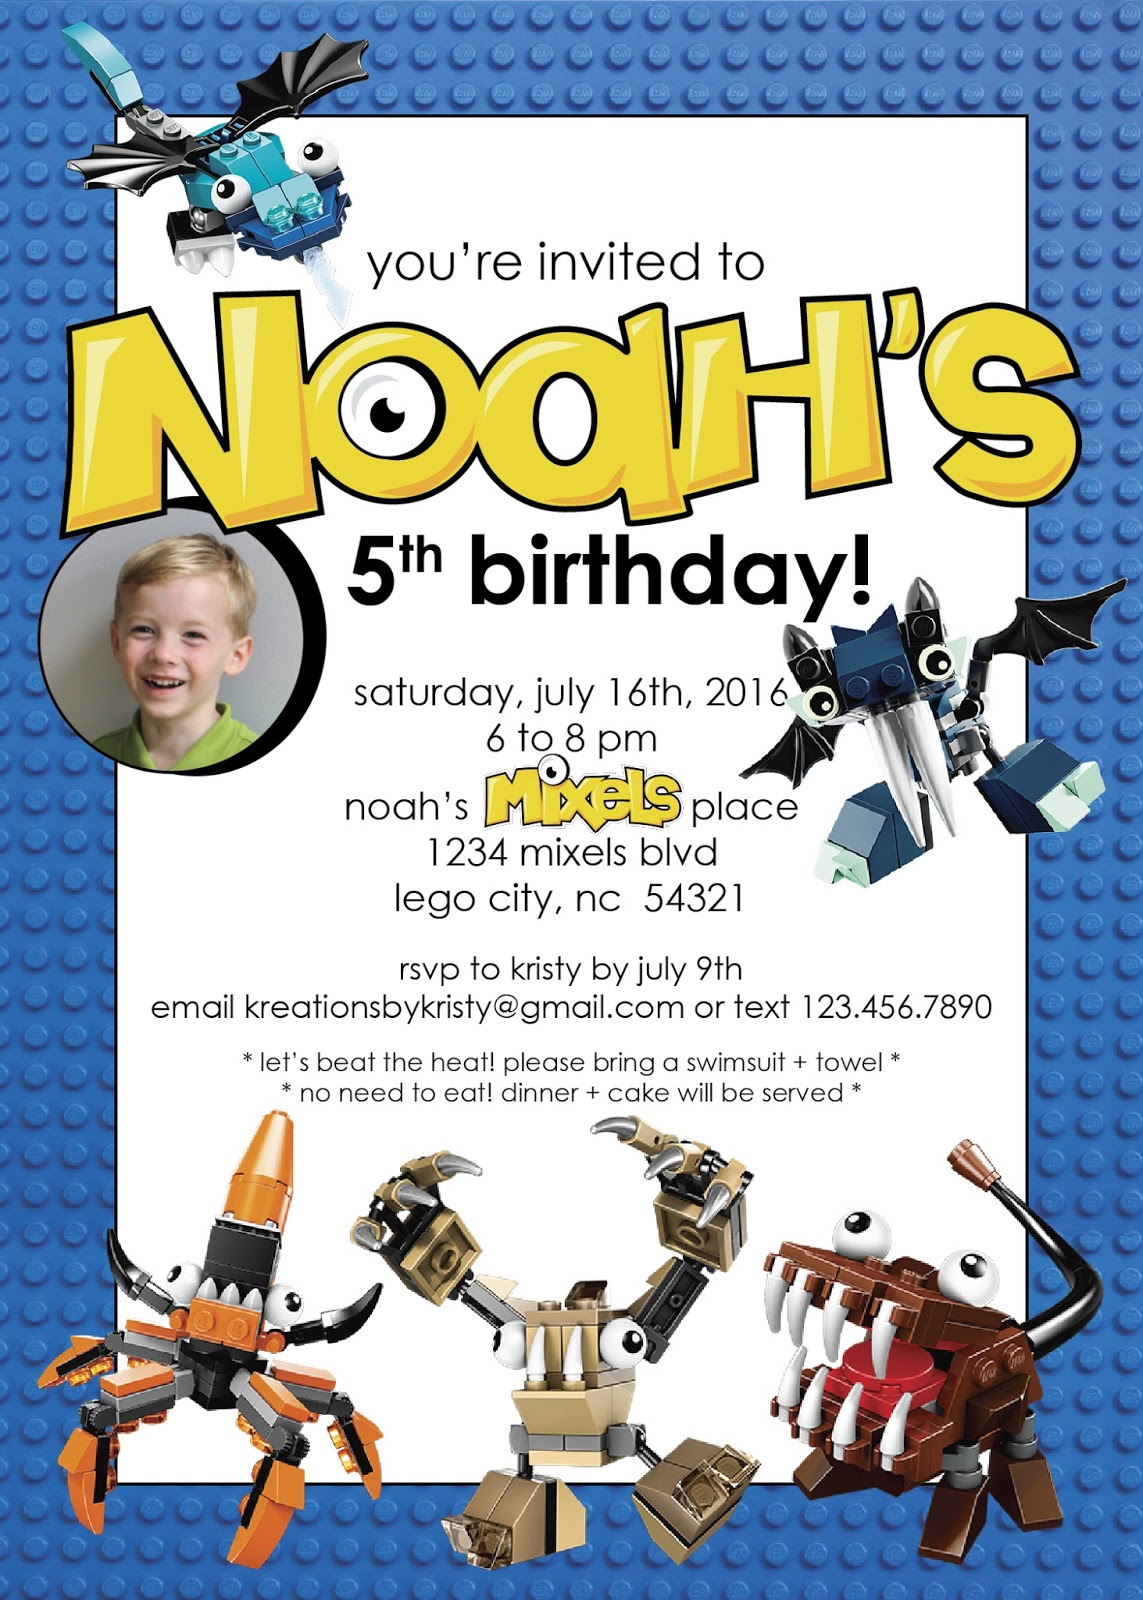 more than 9 to 5my life as Mom Noahs MixelsThemed 5th – Lego City Birthday Invitations